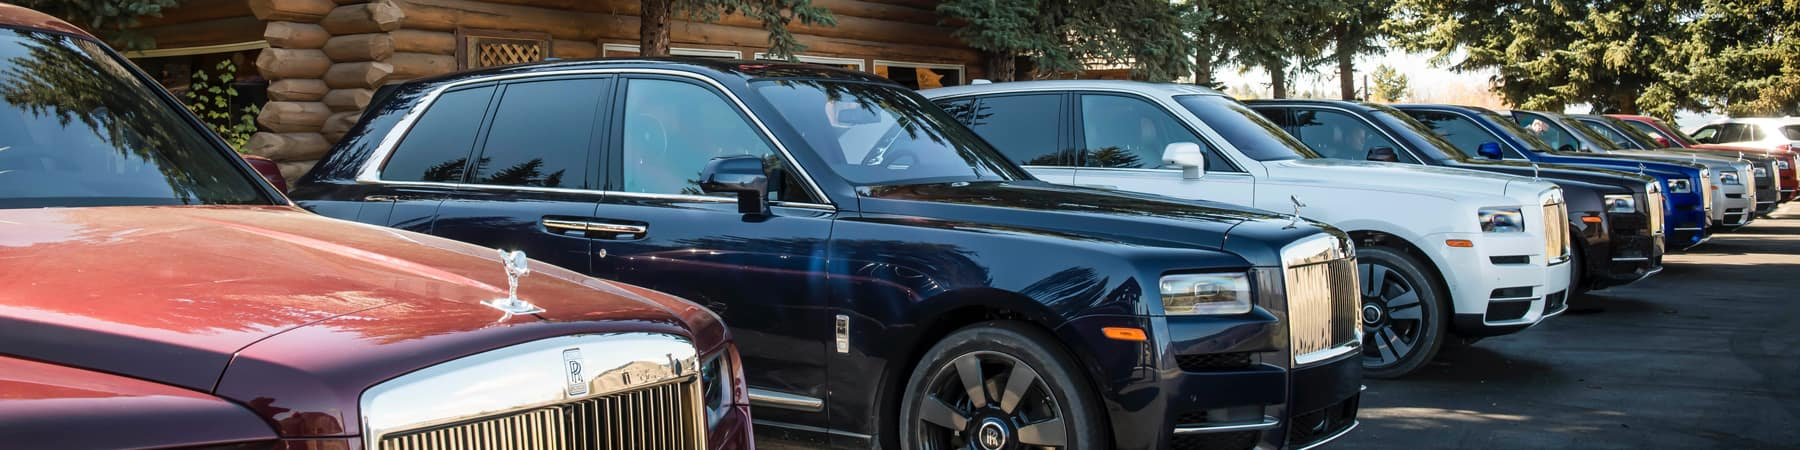 Pre-Owned Rolls-Royce Motor Cars for Sale in Charleston, SC